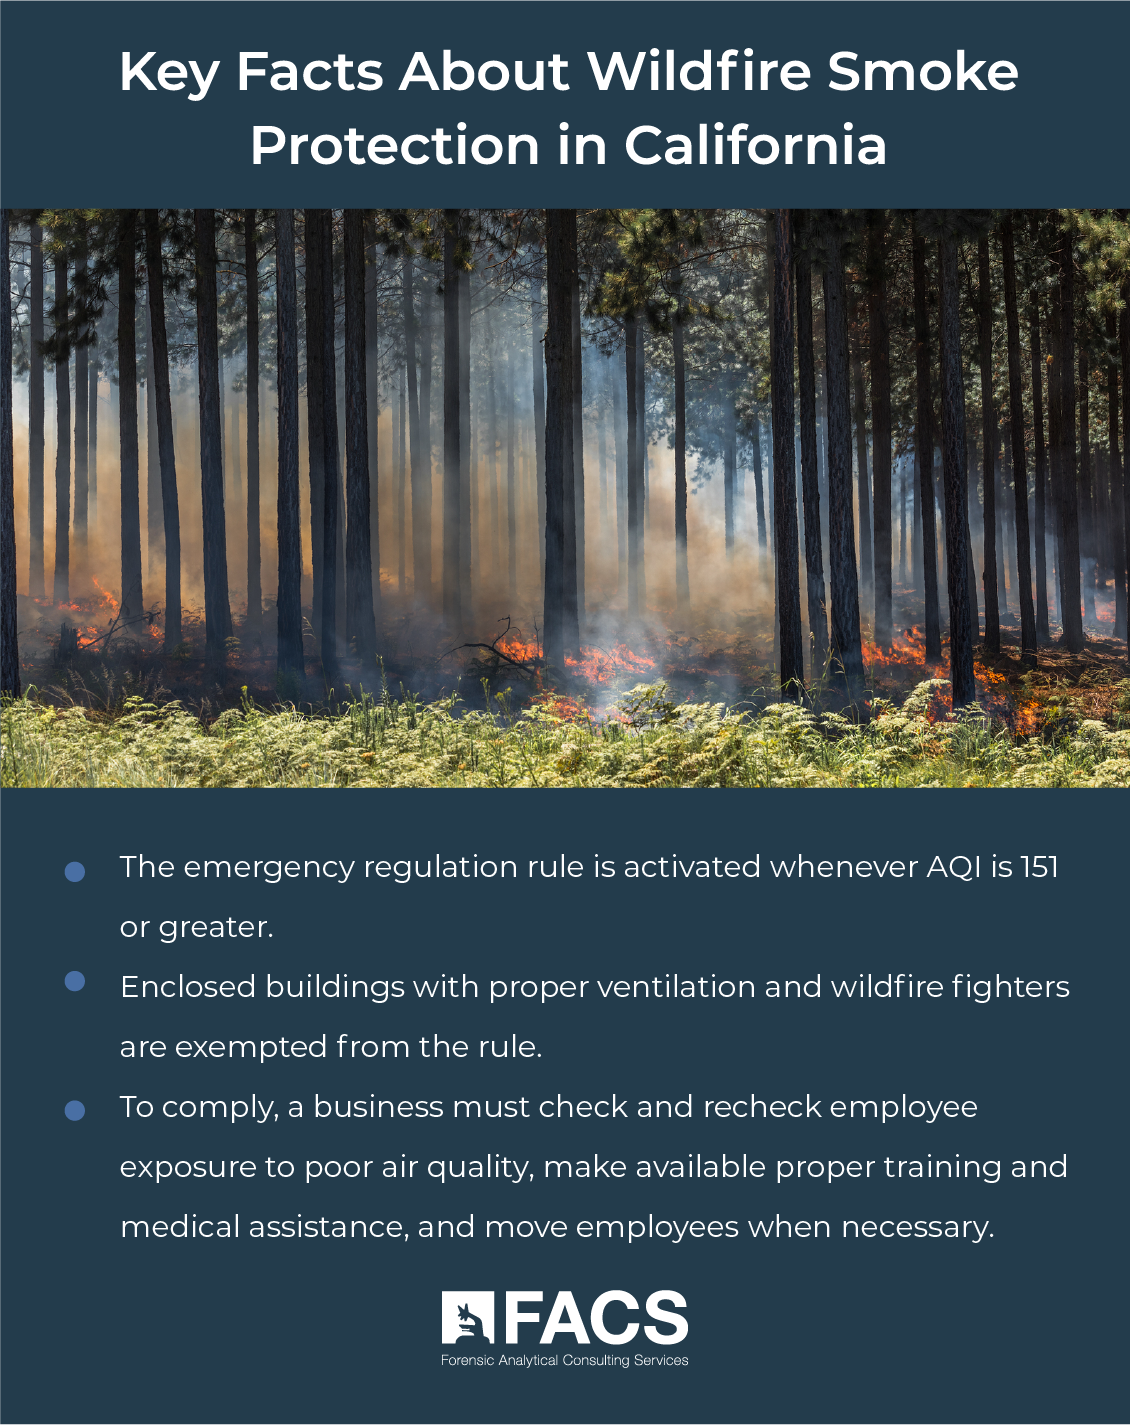 Key Facts About Wildfire Smoke Protection in California